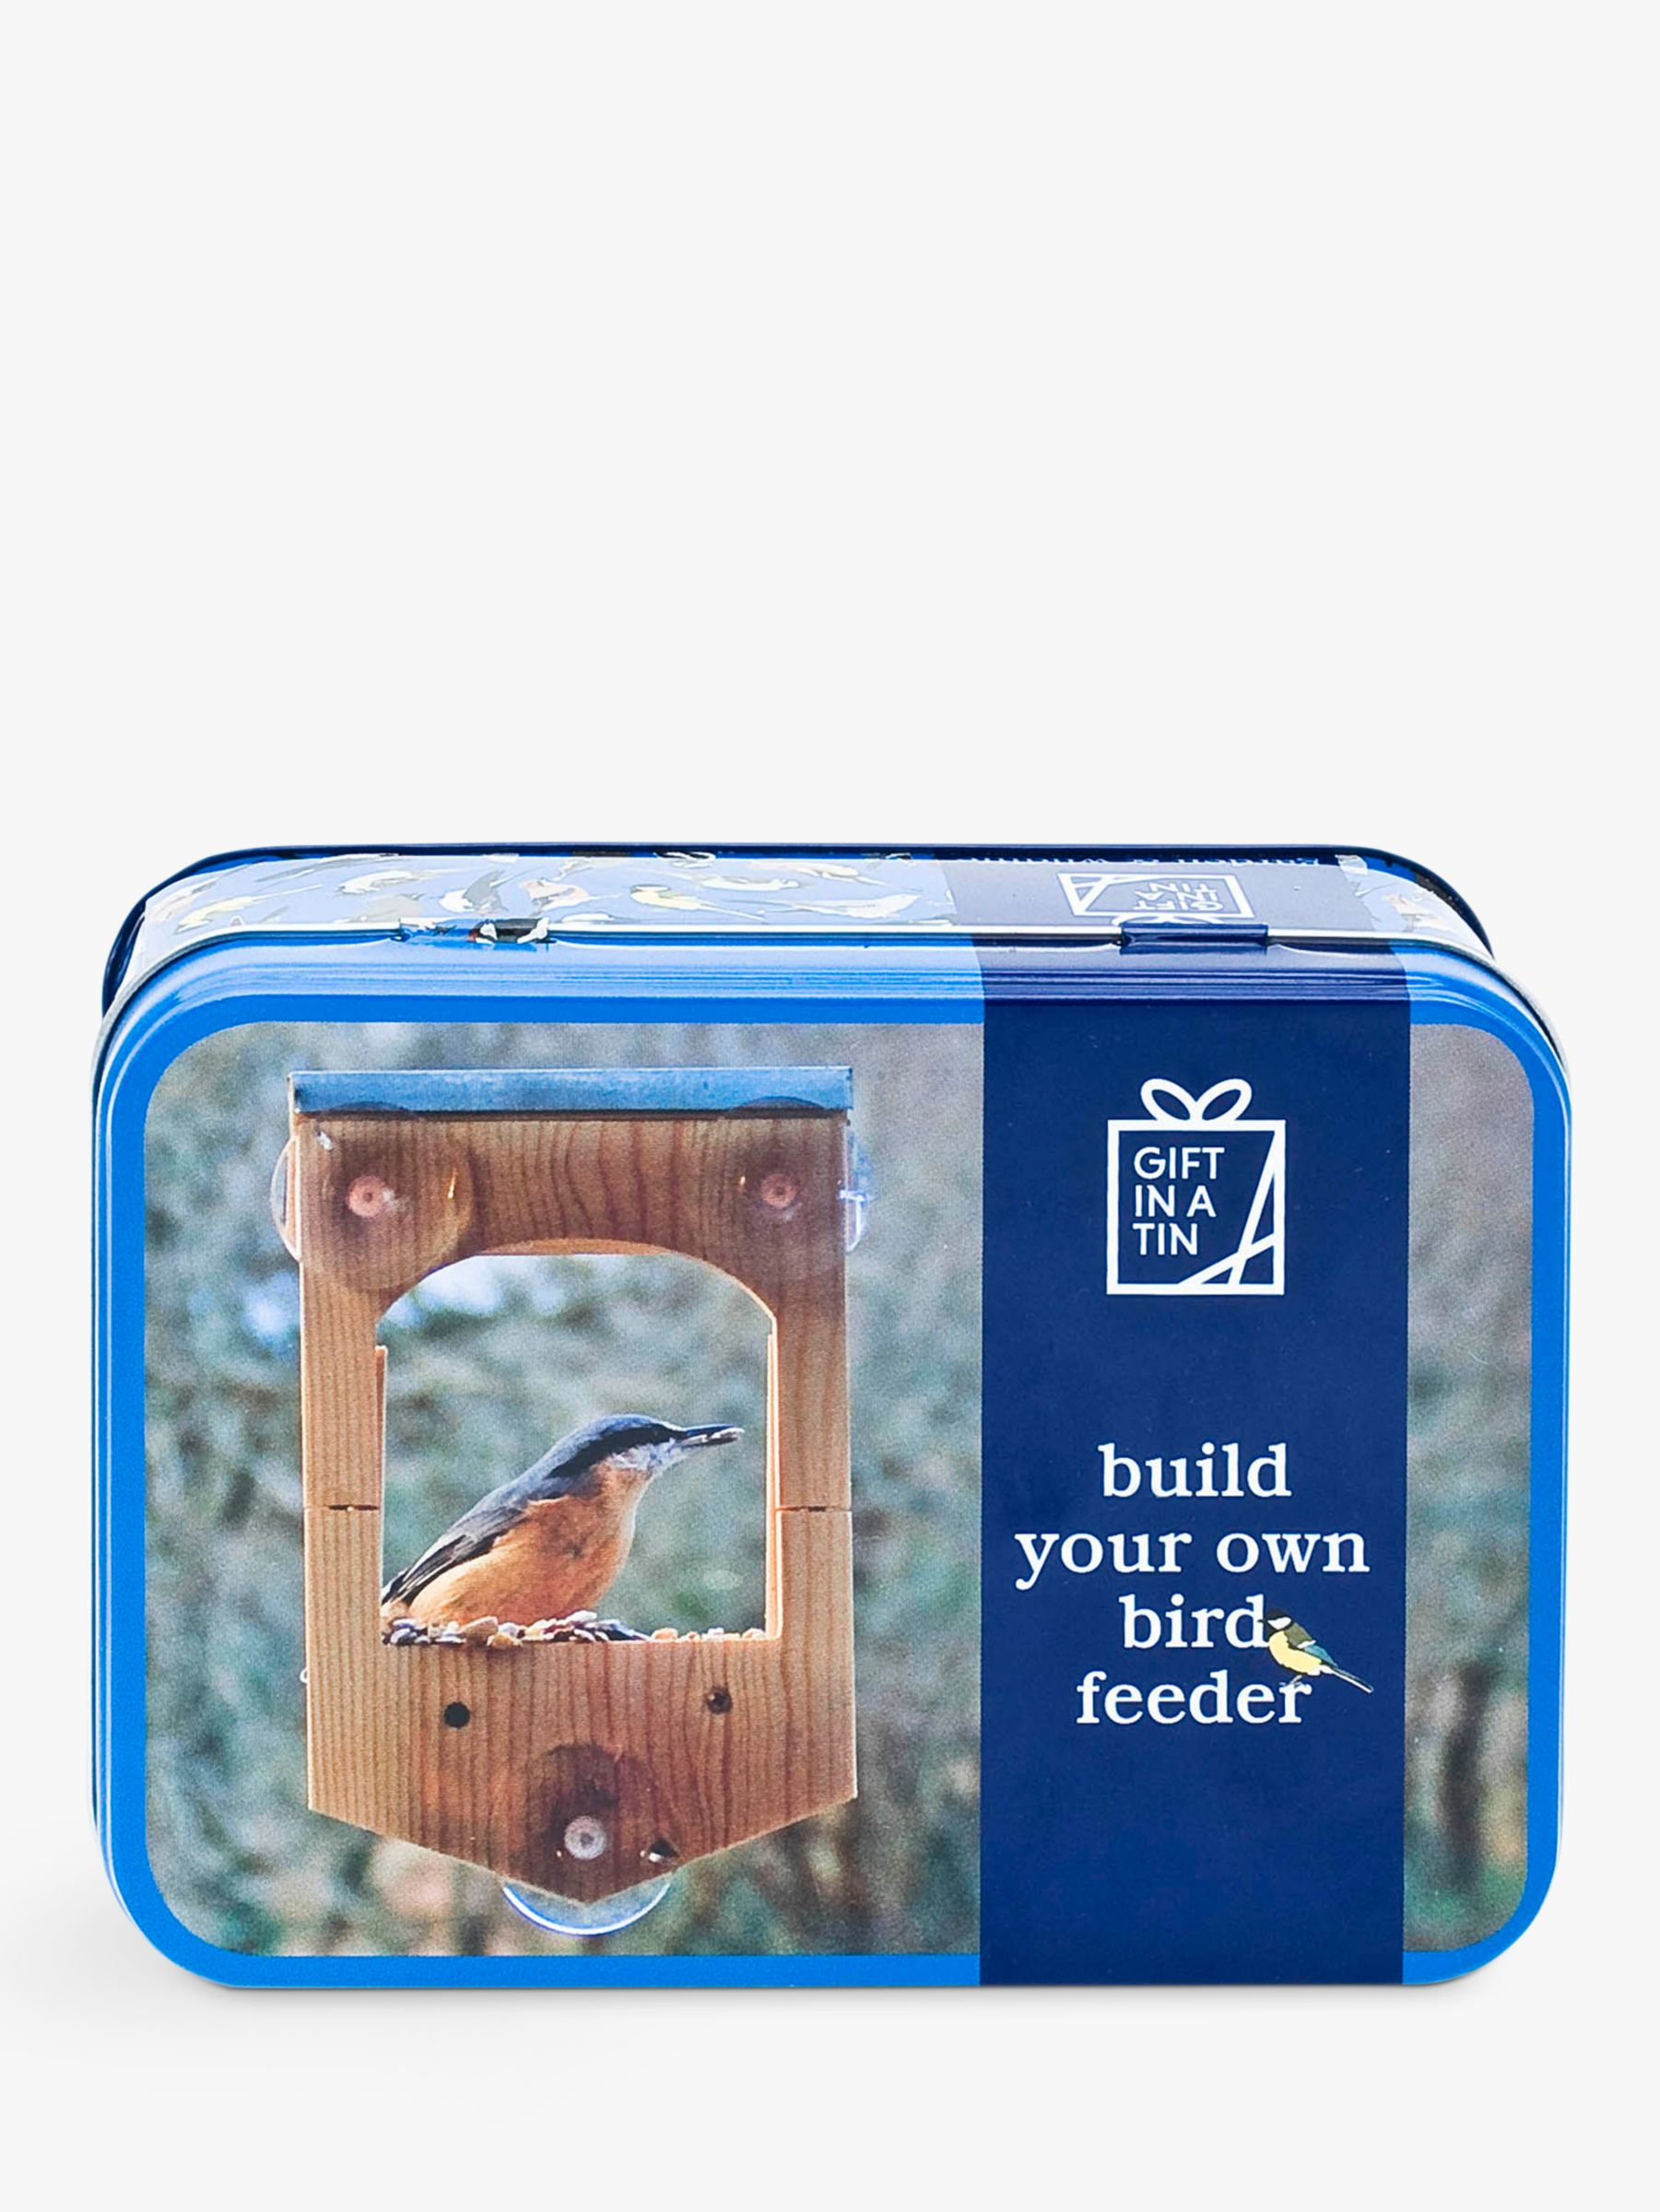 Apples To Pears Apples to Pears Gift In a Tin Build Your Own Bird Feeder Craft Kit